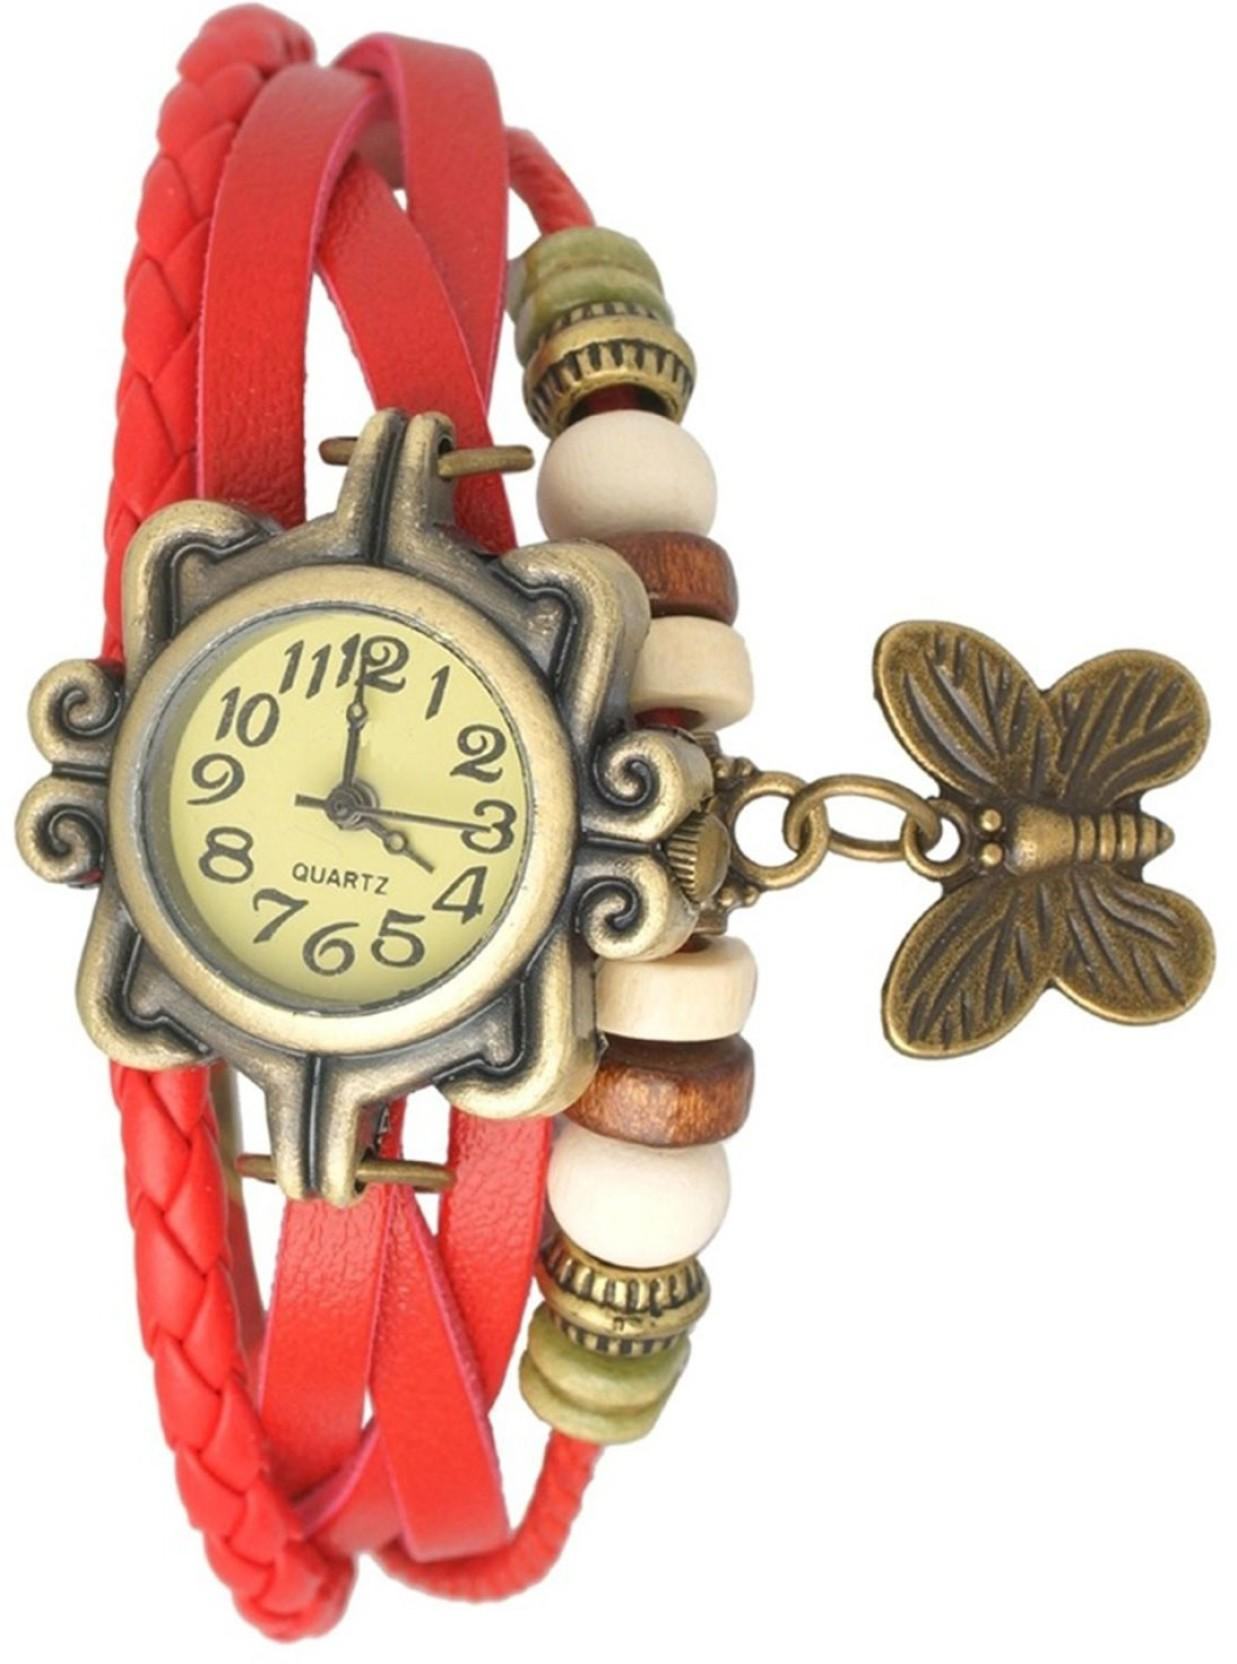 Frida FR-UHDJHBDUSSD- for girls Watch - For Girls